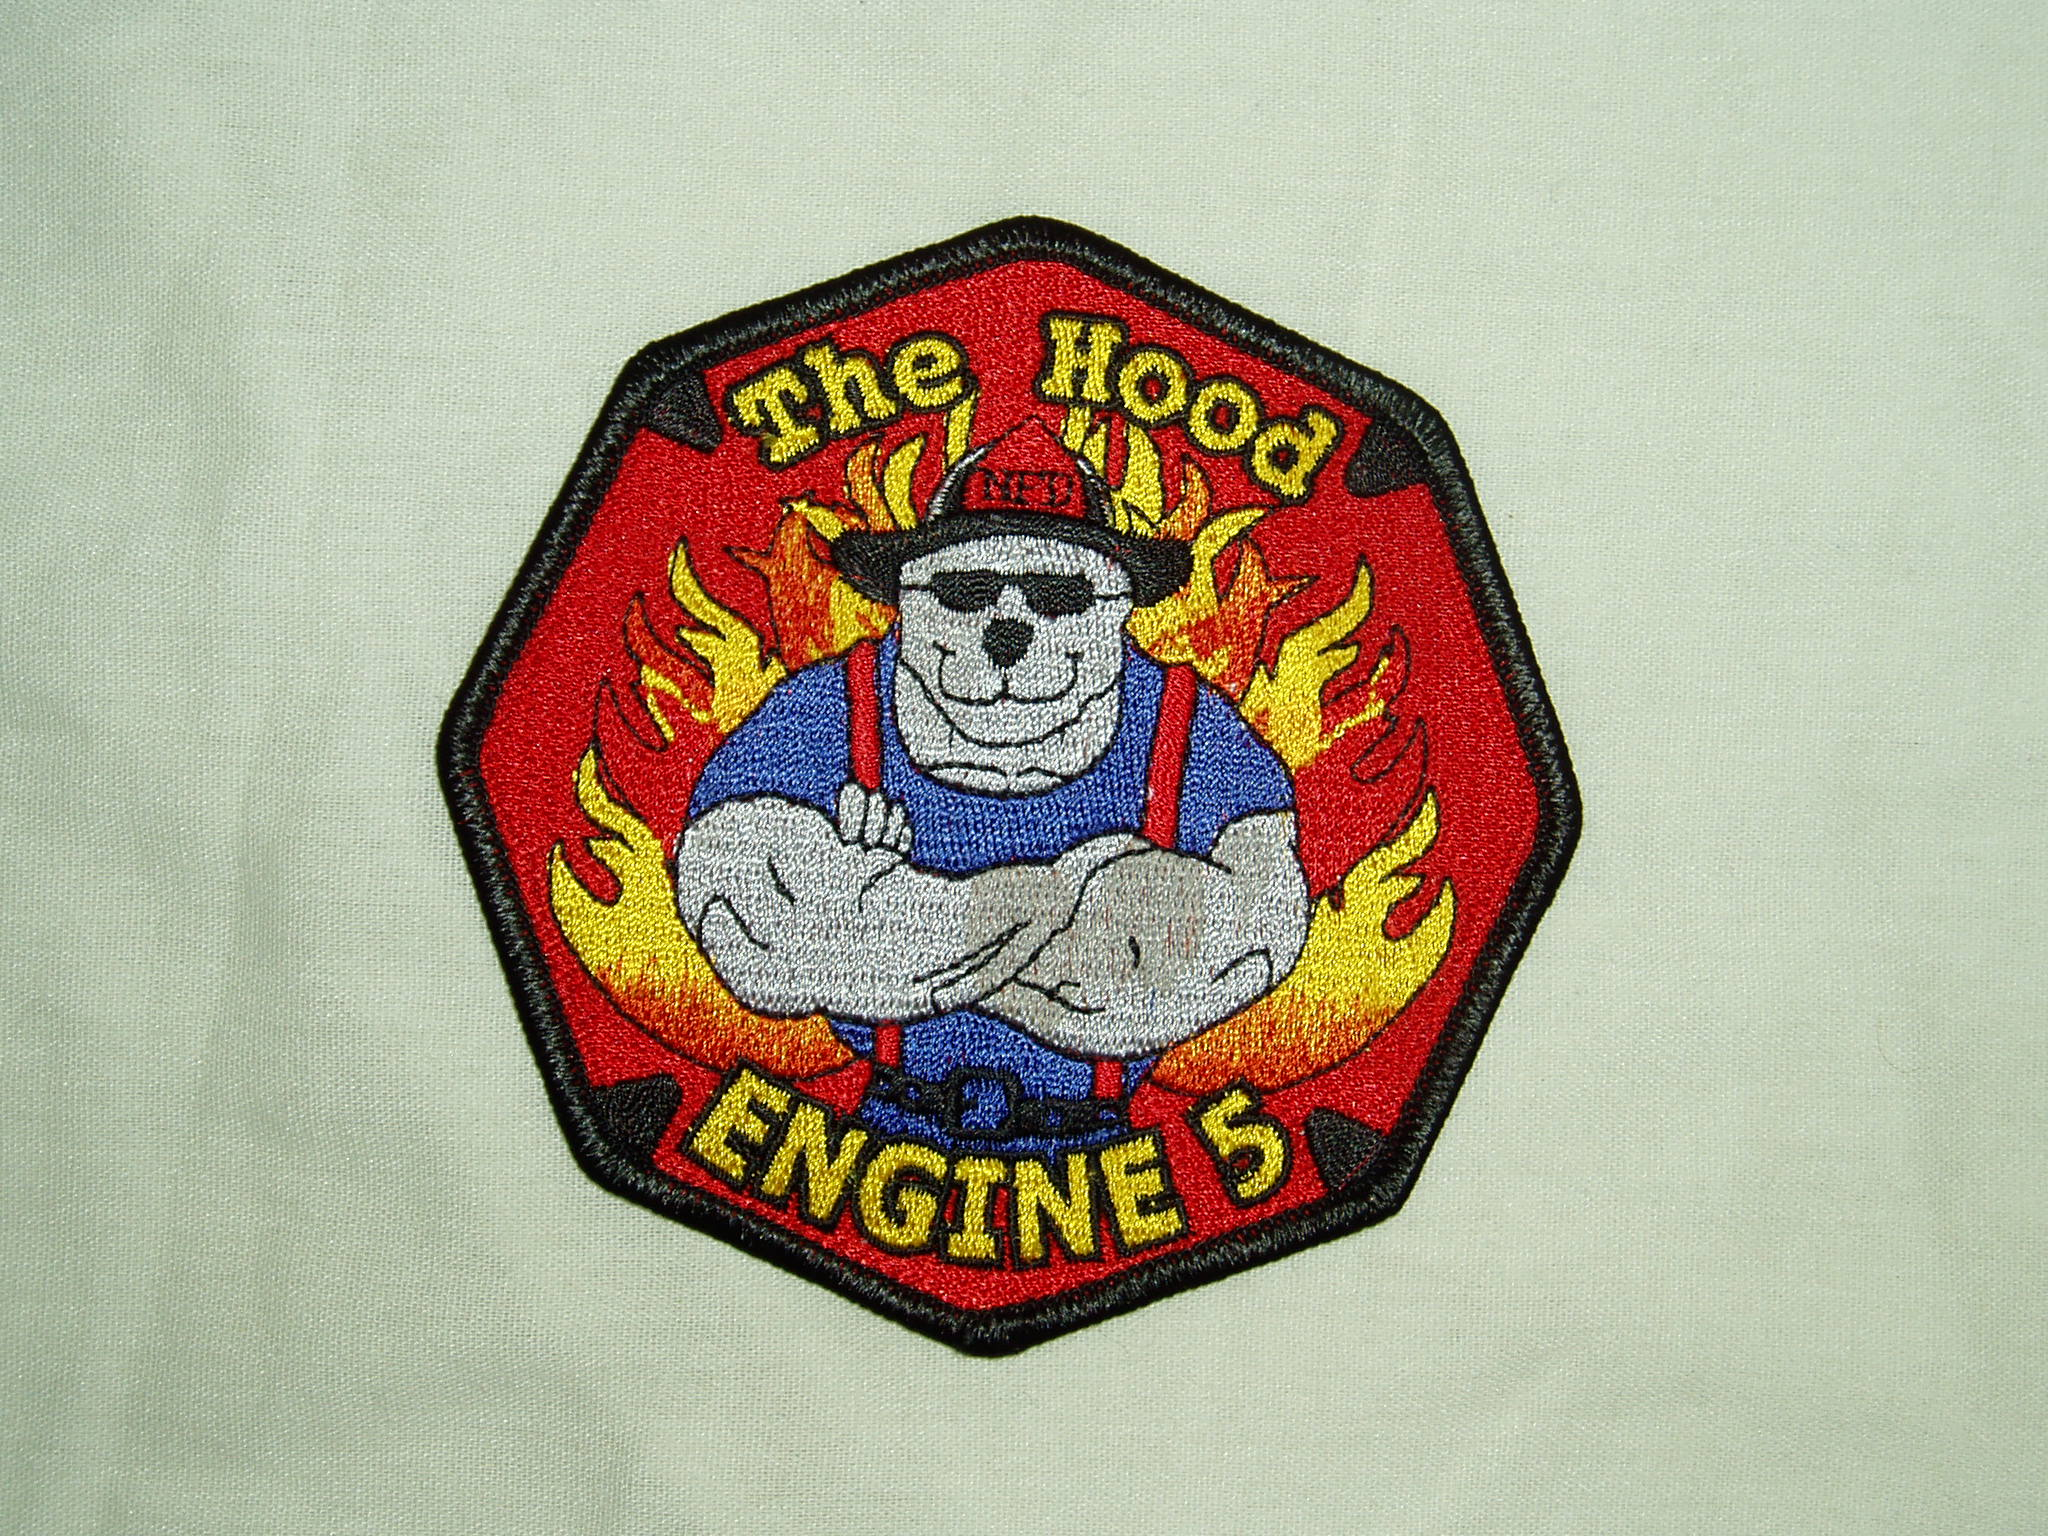 Engine 4 Company Patch